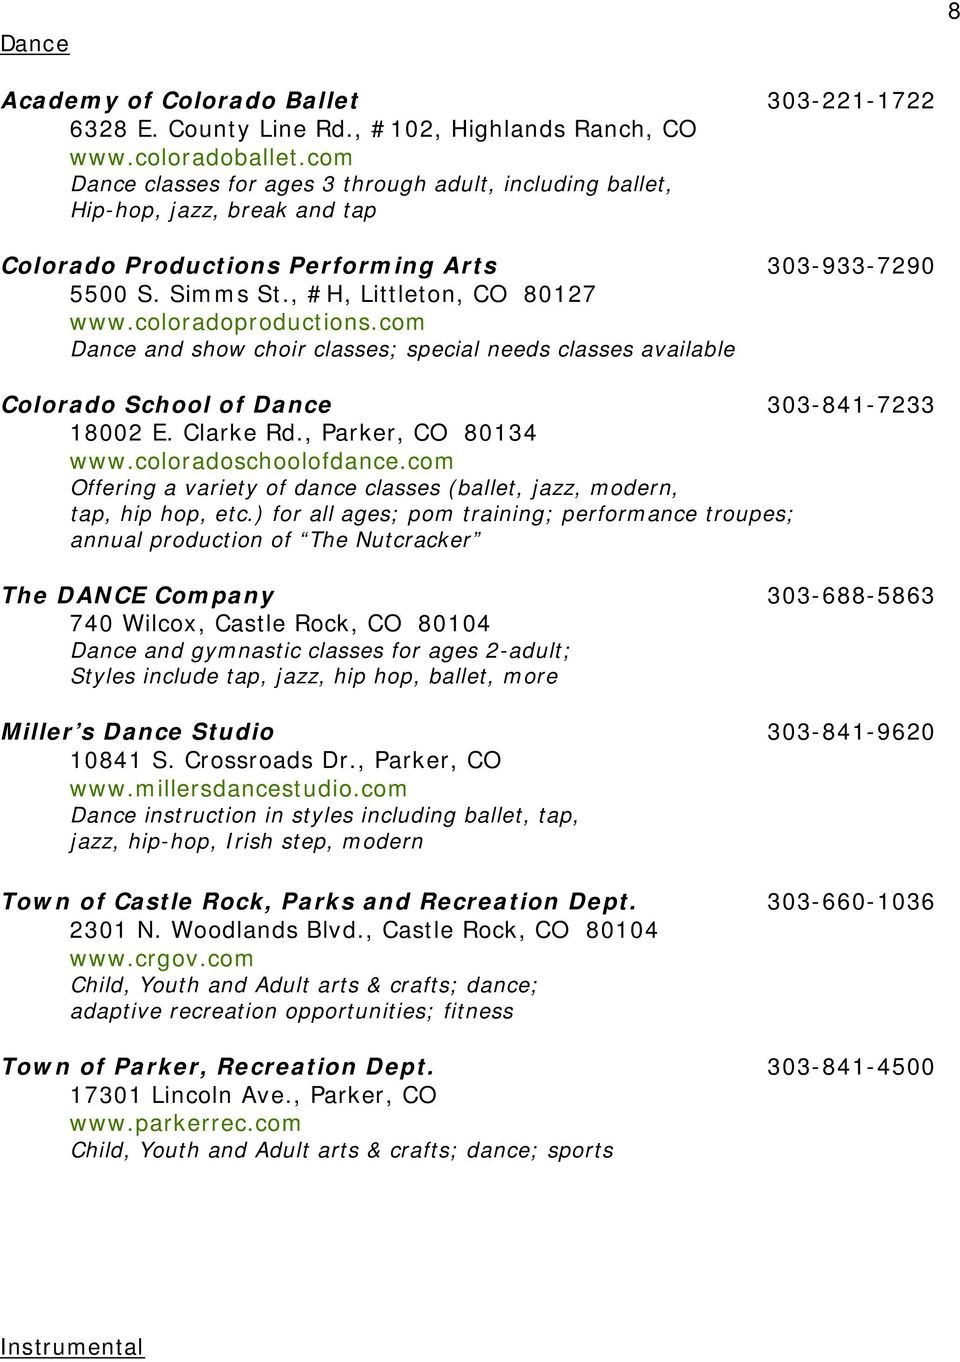 coloradoproductions.com Dance and show choir classes; special needs classes available Colorado School of Dance 303-841-7233 18002 E. Clarke Rd., Parker, CO 80134 www.coloradoschoolofdance.